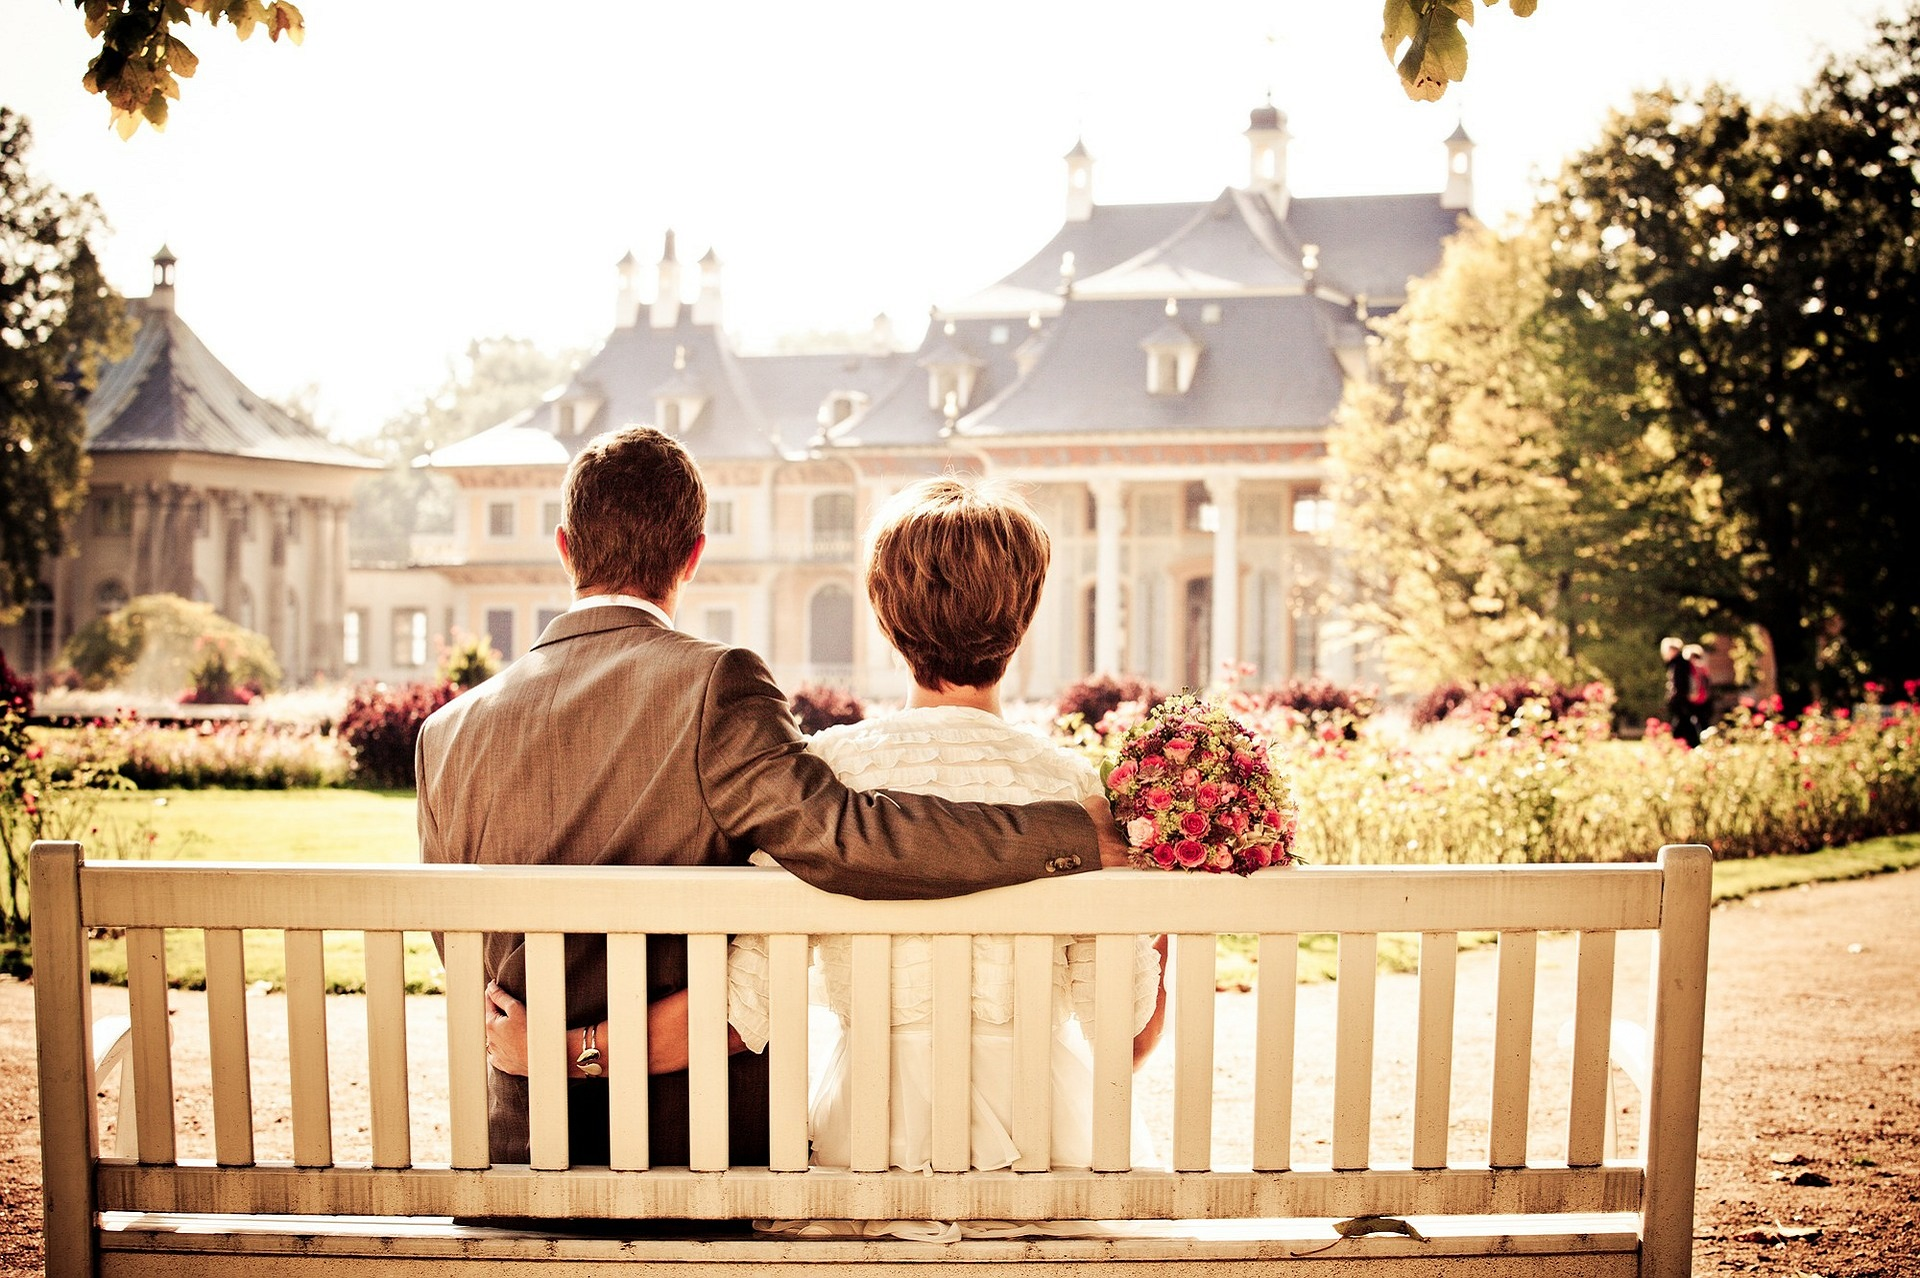 couple on bench, destination wedding